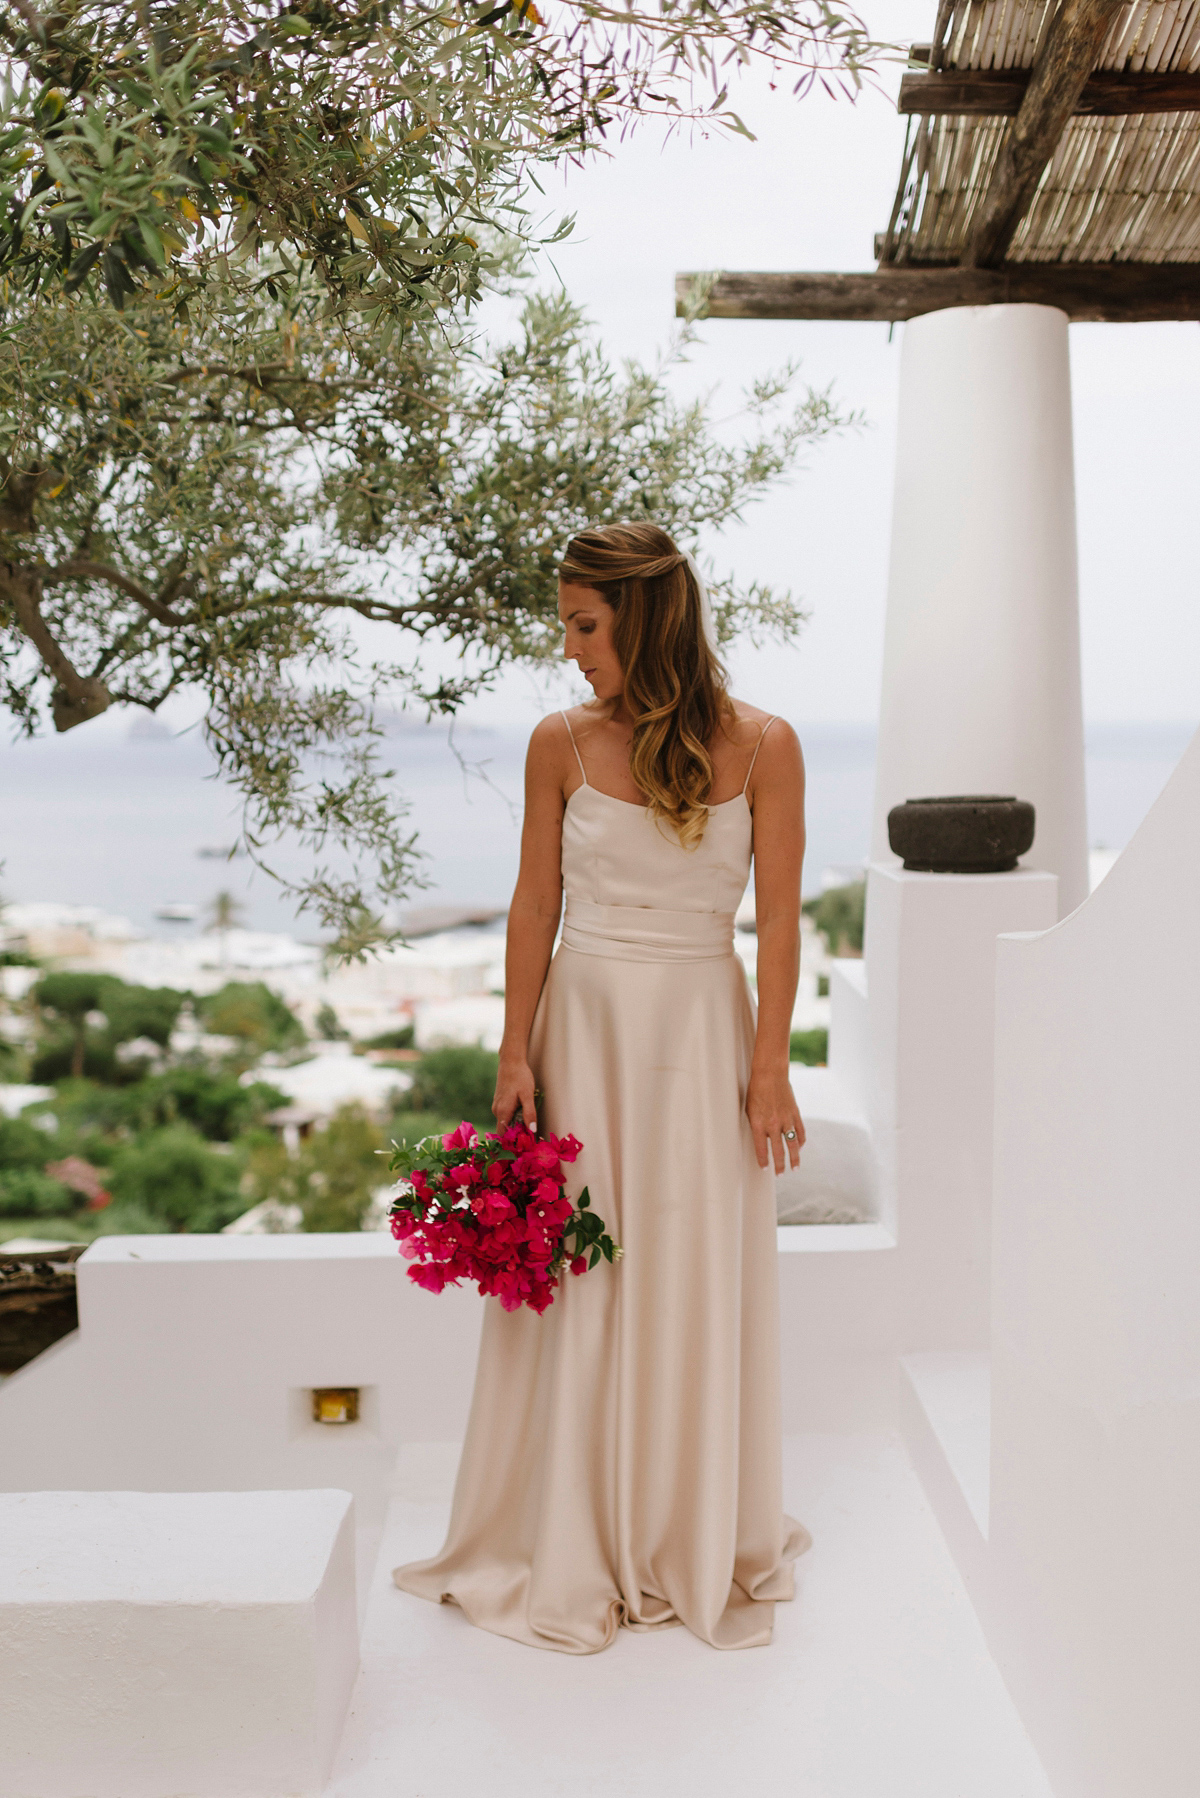 Beautiful bride Martha wore a wedding dress by Halfpenny London